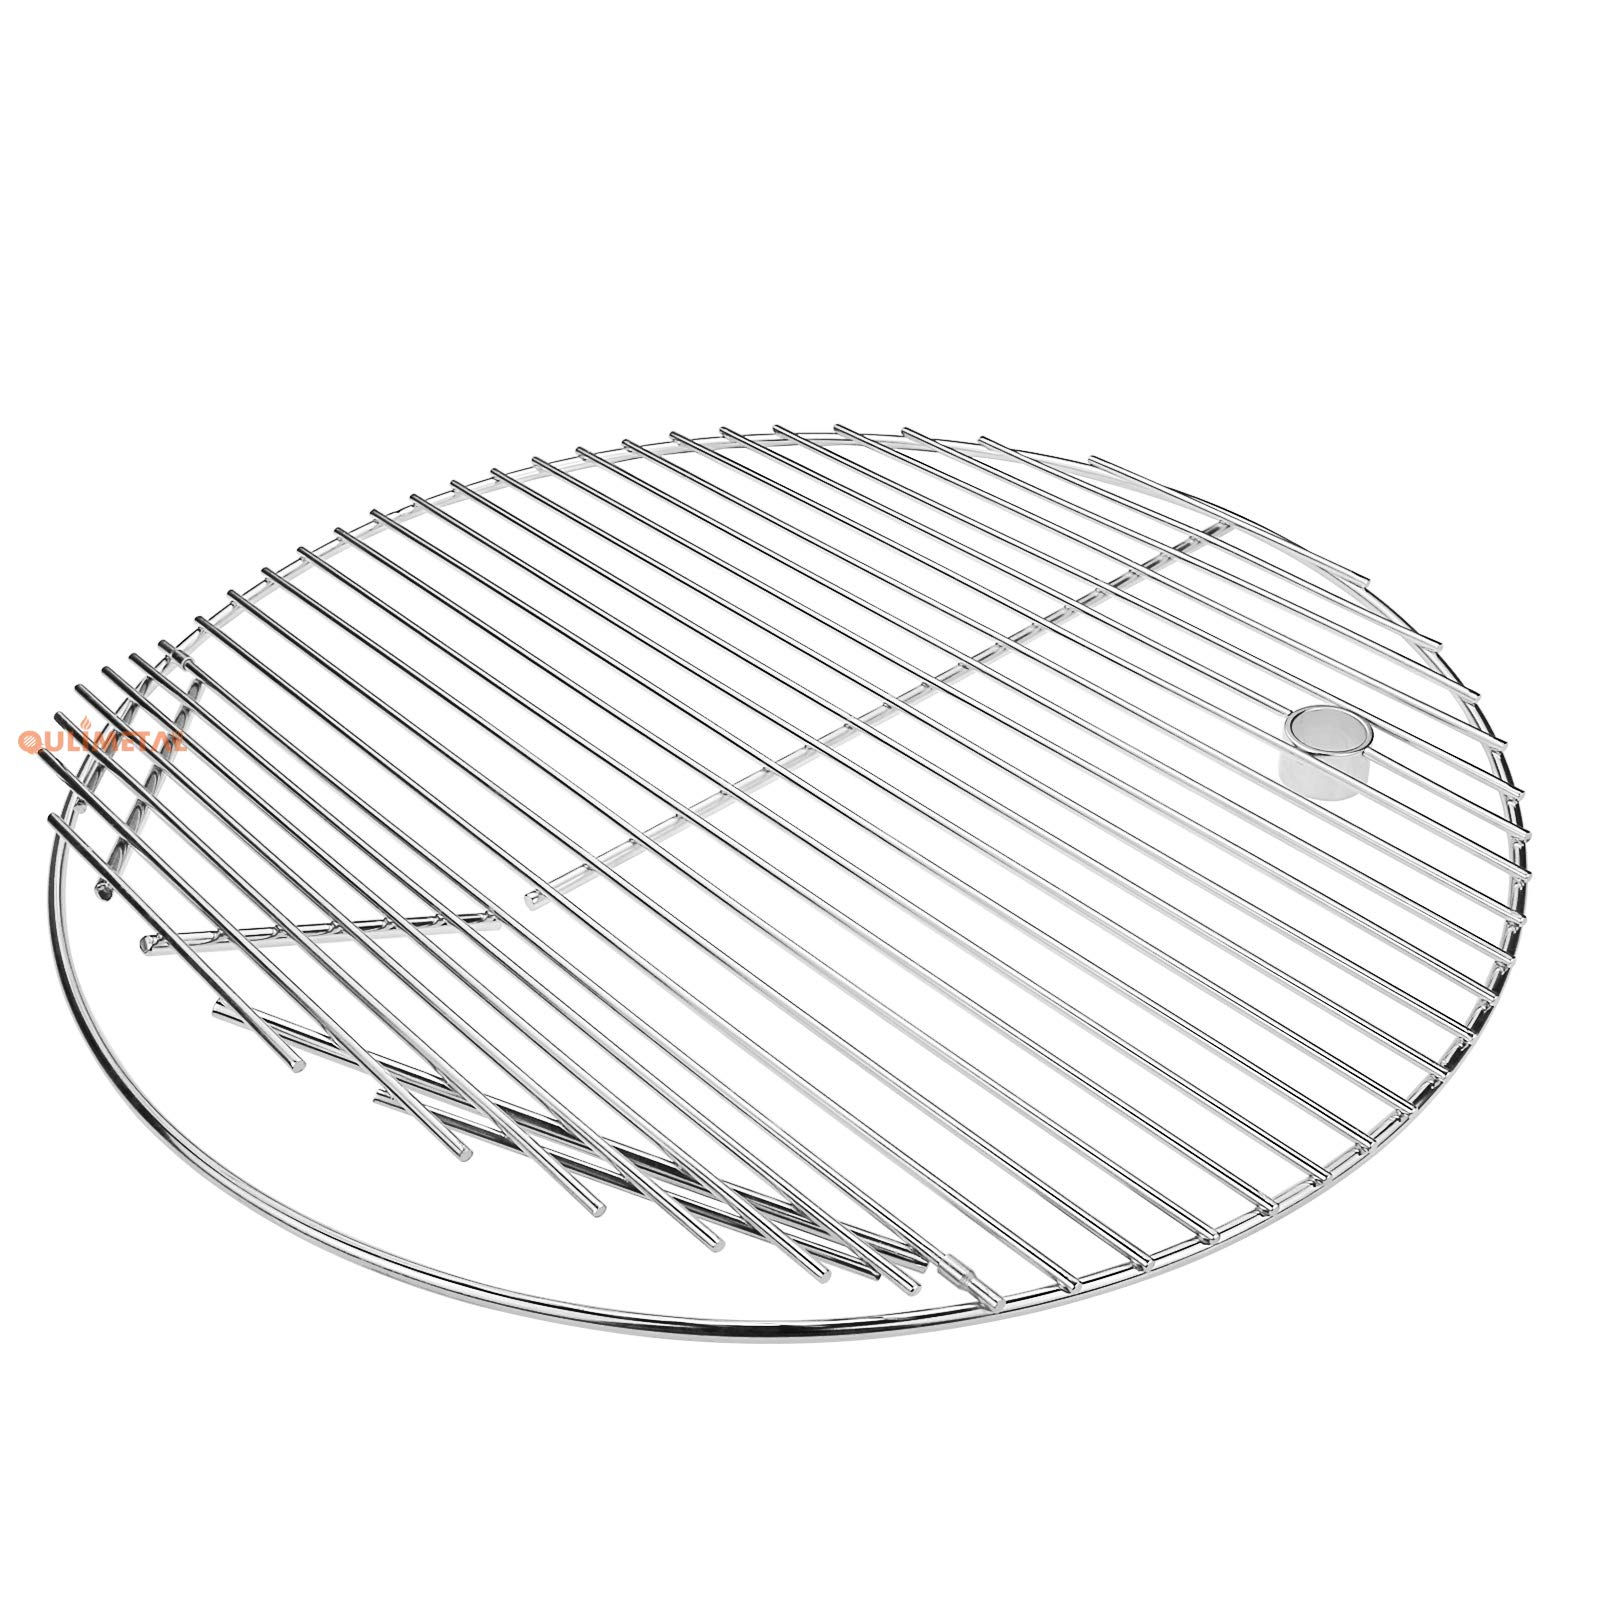 QuliMetal 19.5 Inch SUS 304 Round Cooking Grate Cooking Grid for Akorn Kamado Ceramic Grill, Pit Boss K24, Louisiana Grills K24, Char-Griller 16620 and Other Grills, for 20 Inch Charcoal Grill by QuliMetal